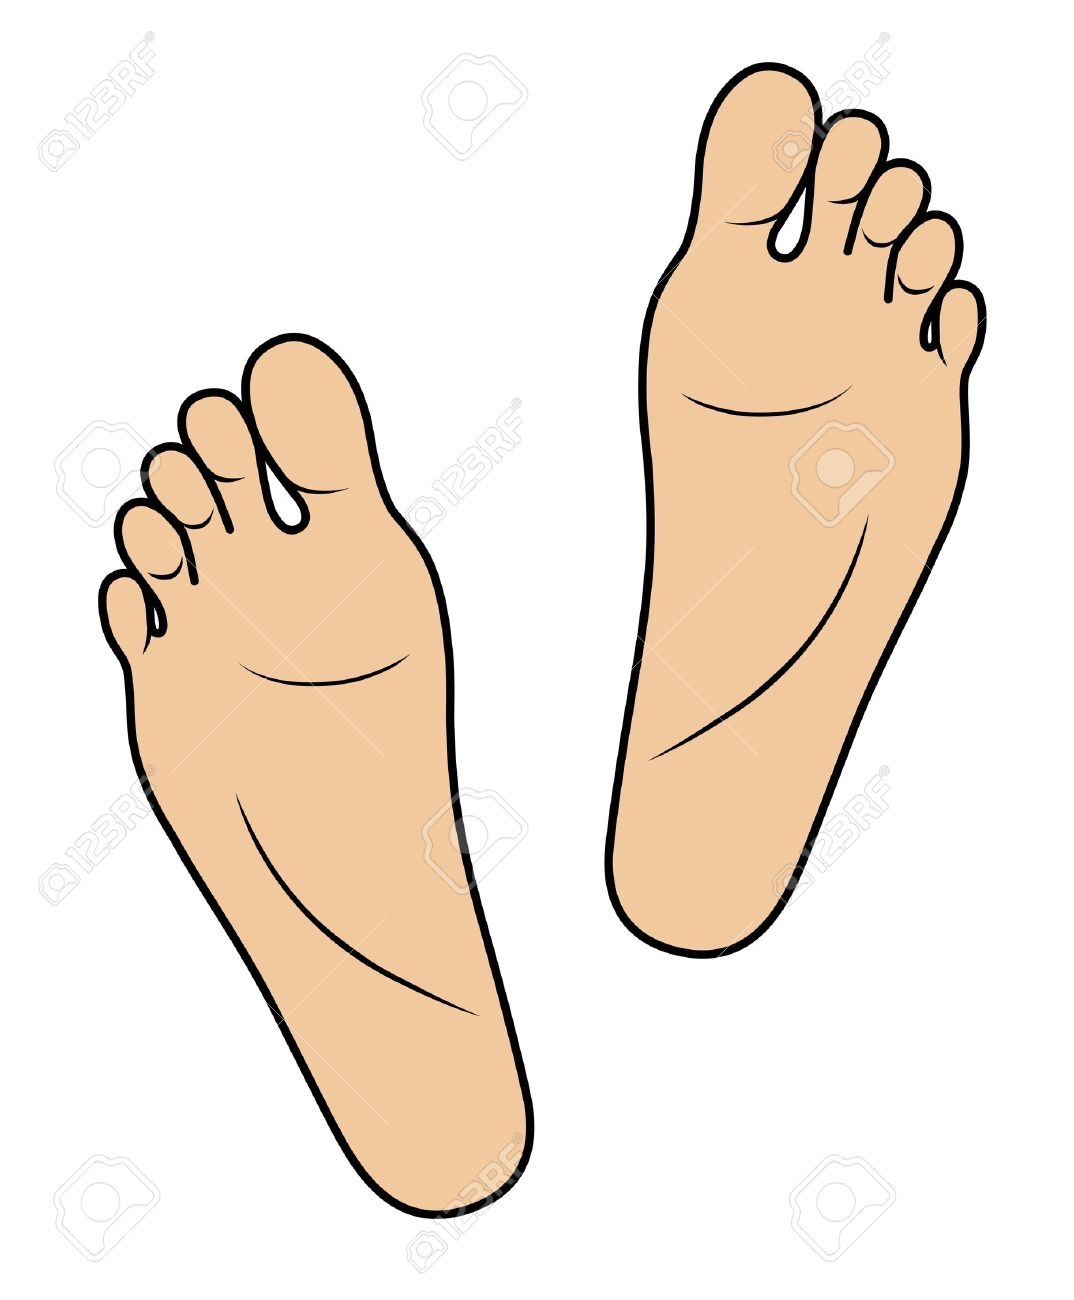 Feet clipart. Awesome collection digital coloring